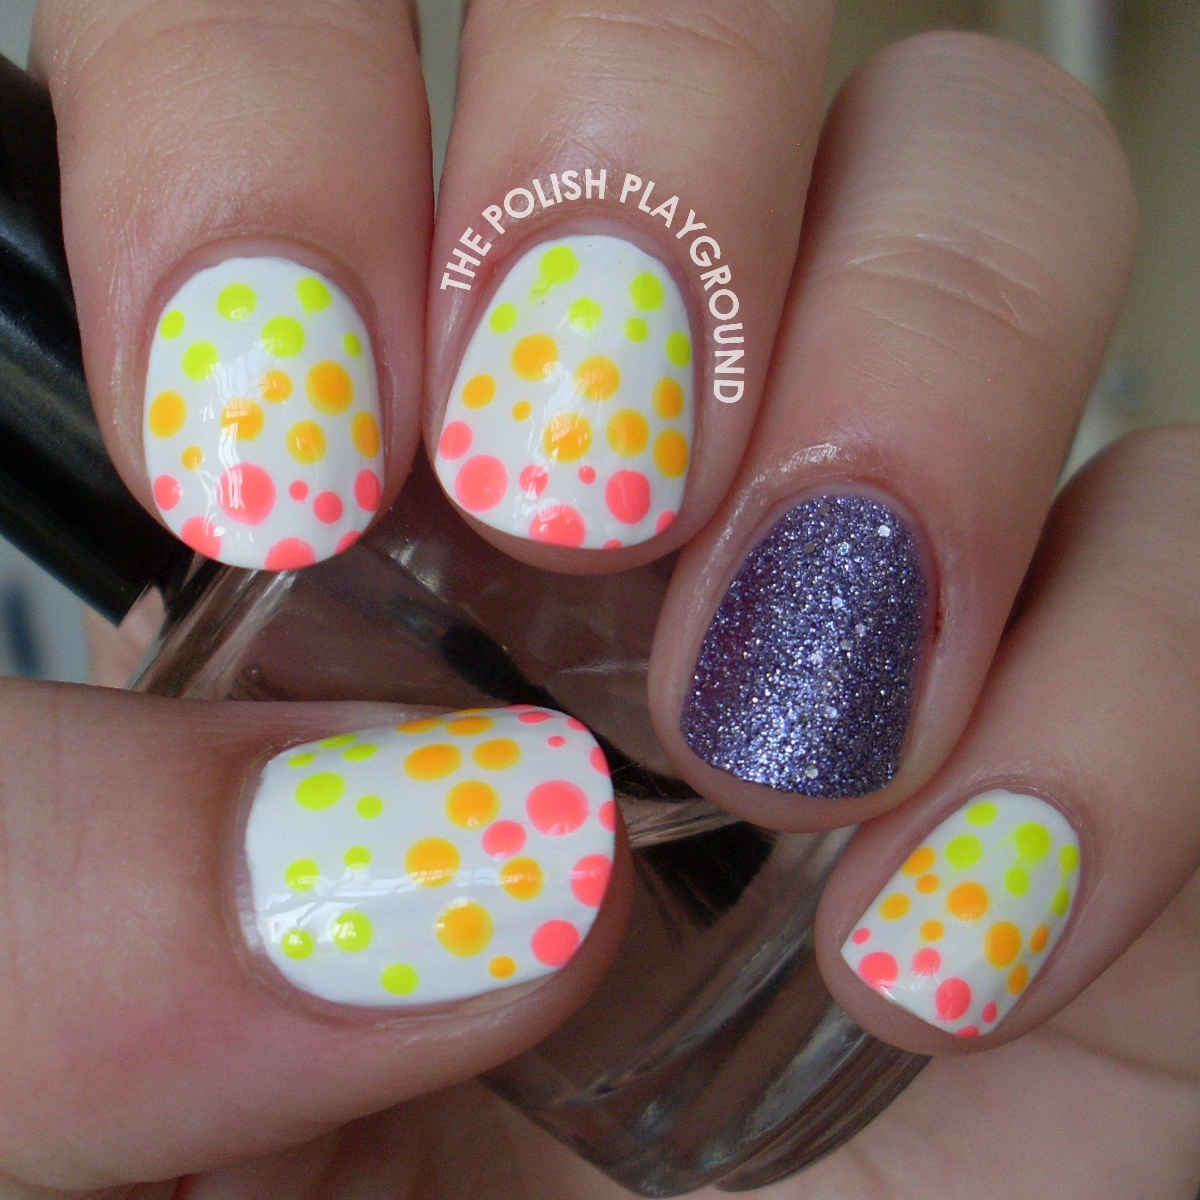 Neon Spotted Nail Art with Texture Accent